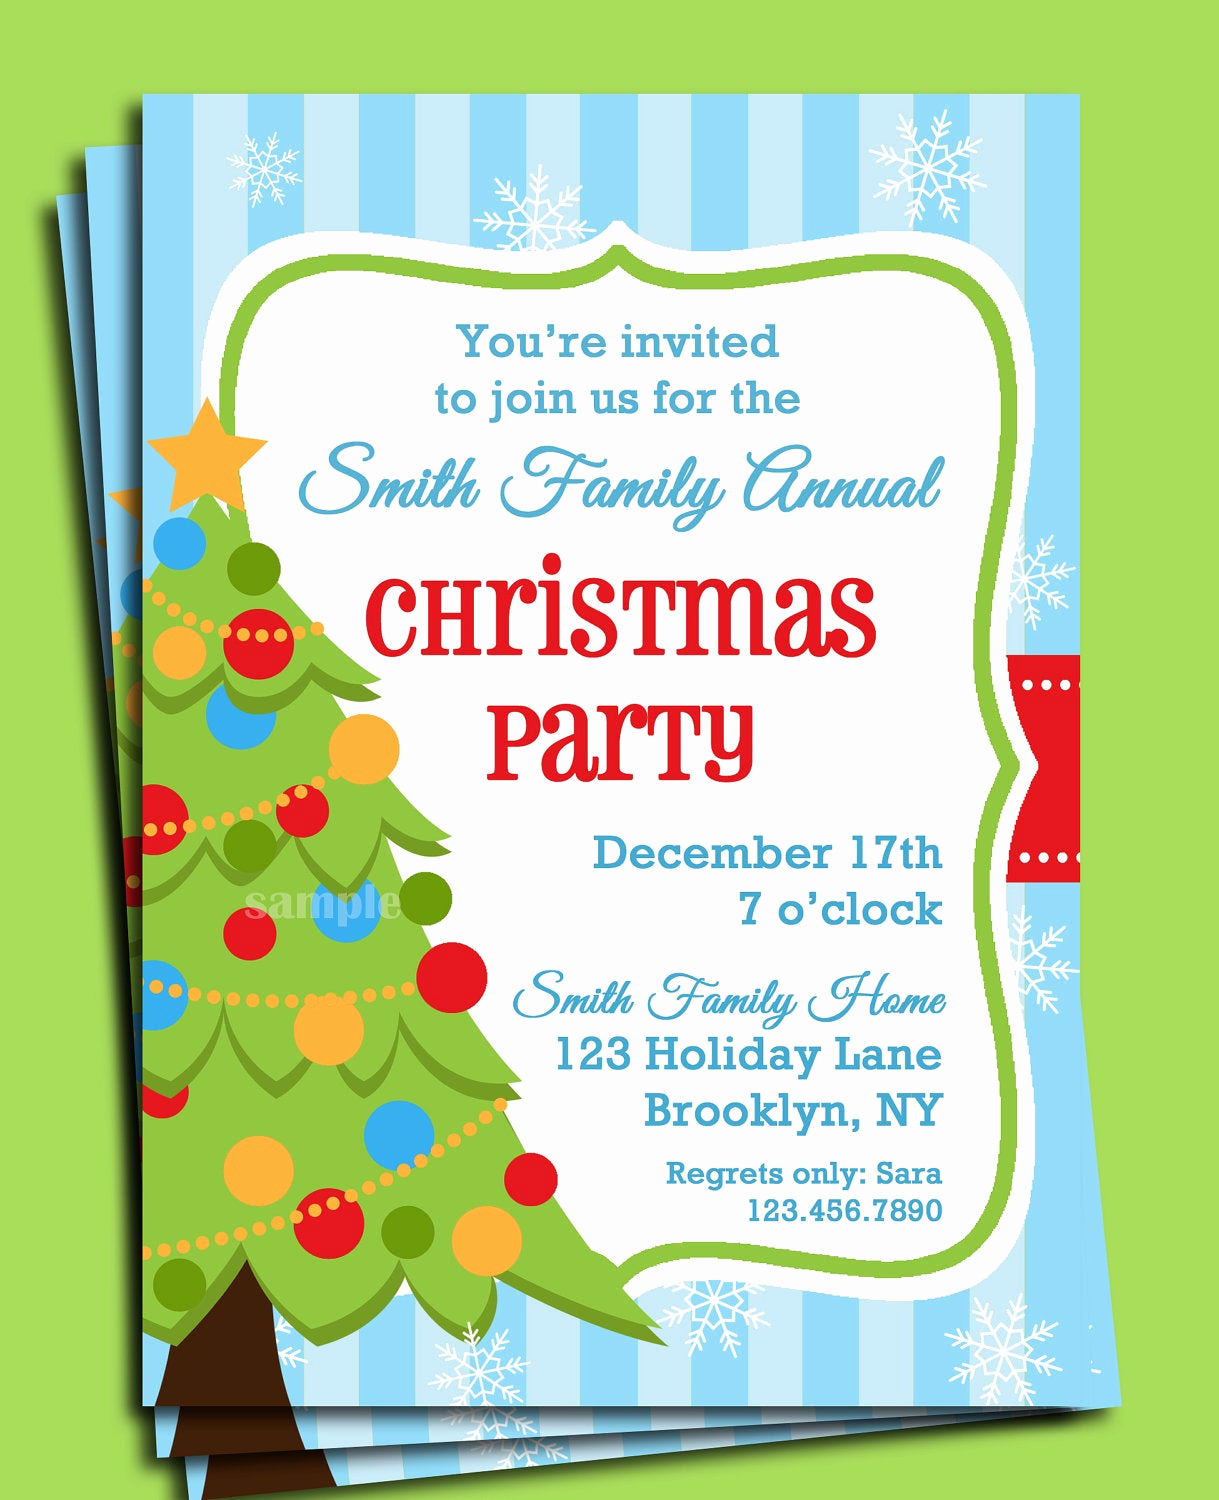 Christmas Party Invitations Free Luxury Christmas Party Invitation Printable Christmas Tree In Snow